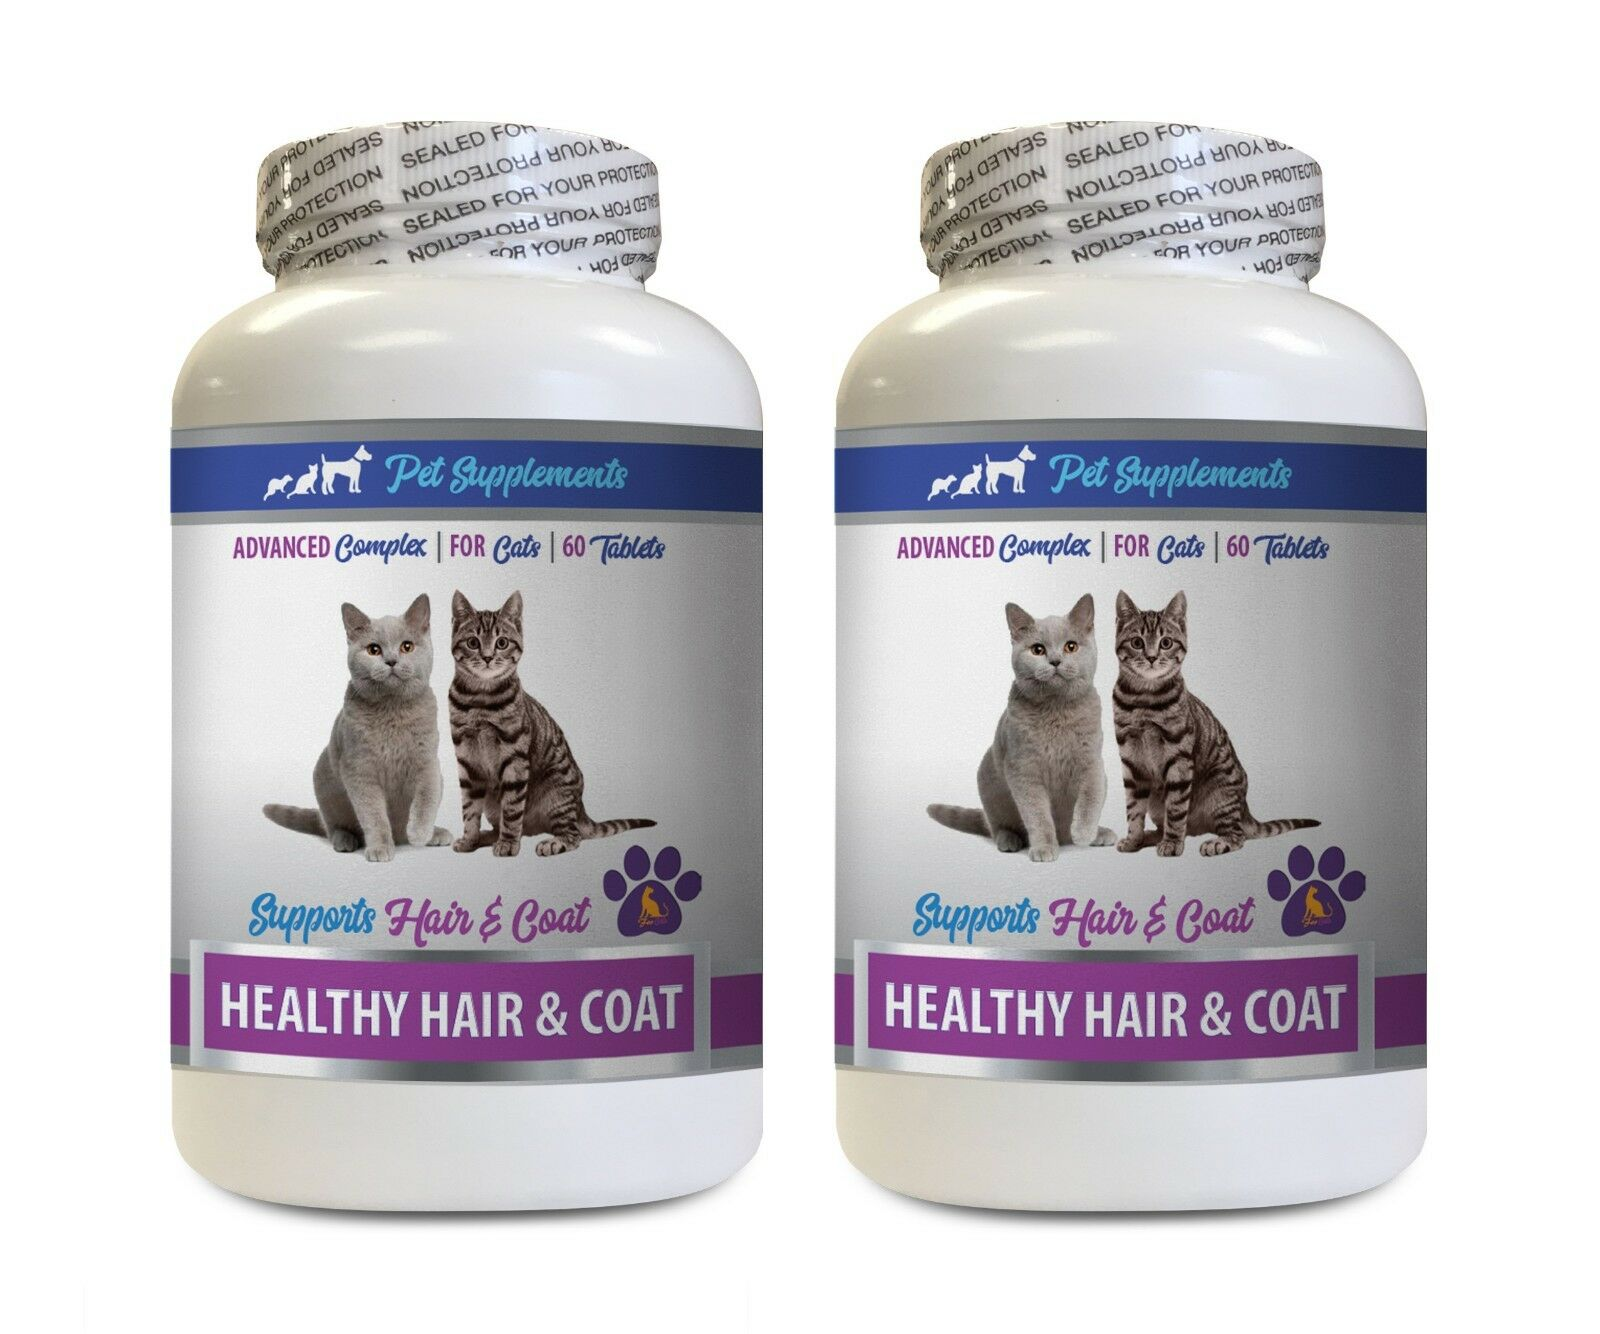 Cat dry skin relief - CATS HAIR AND COAT HEALTH 2B - kitty vitamin